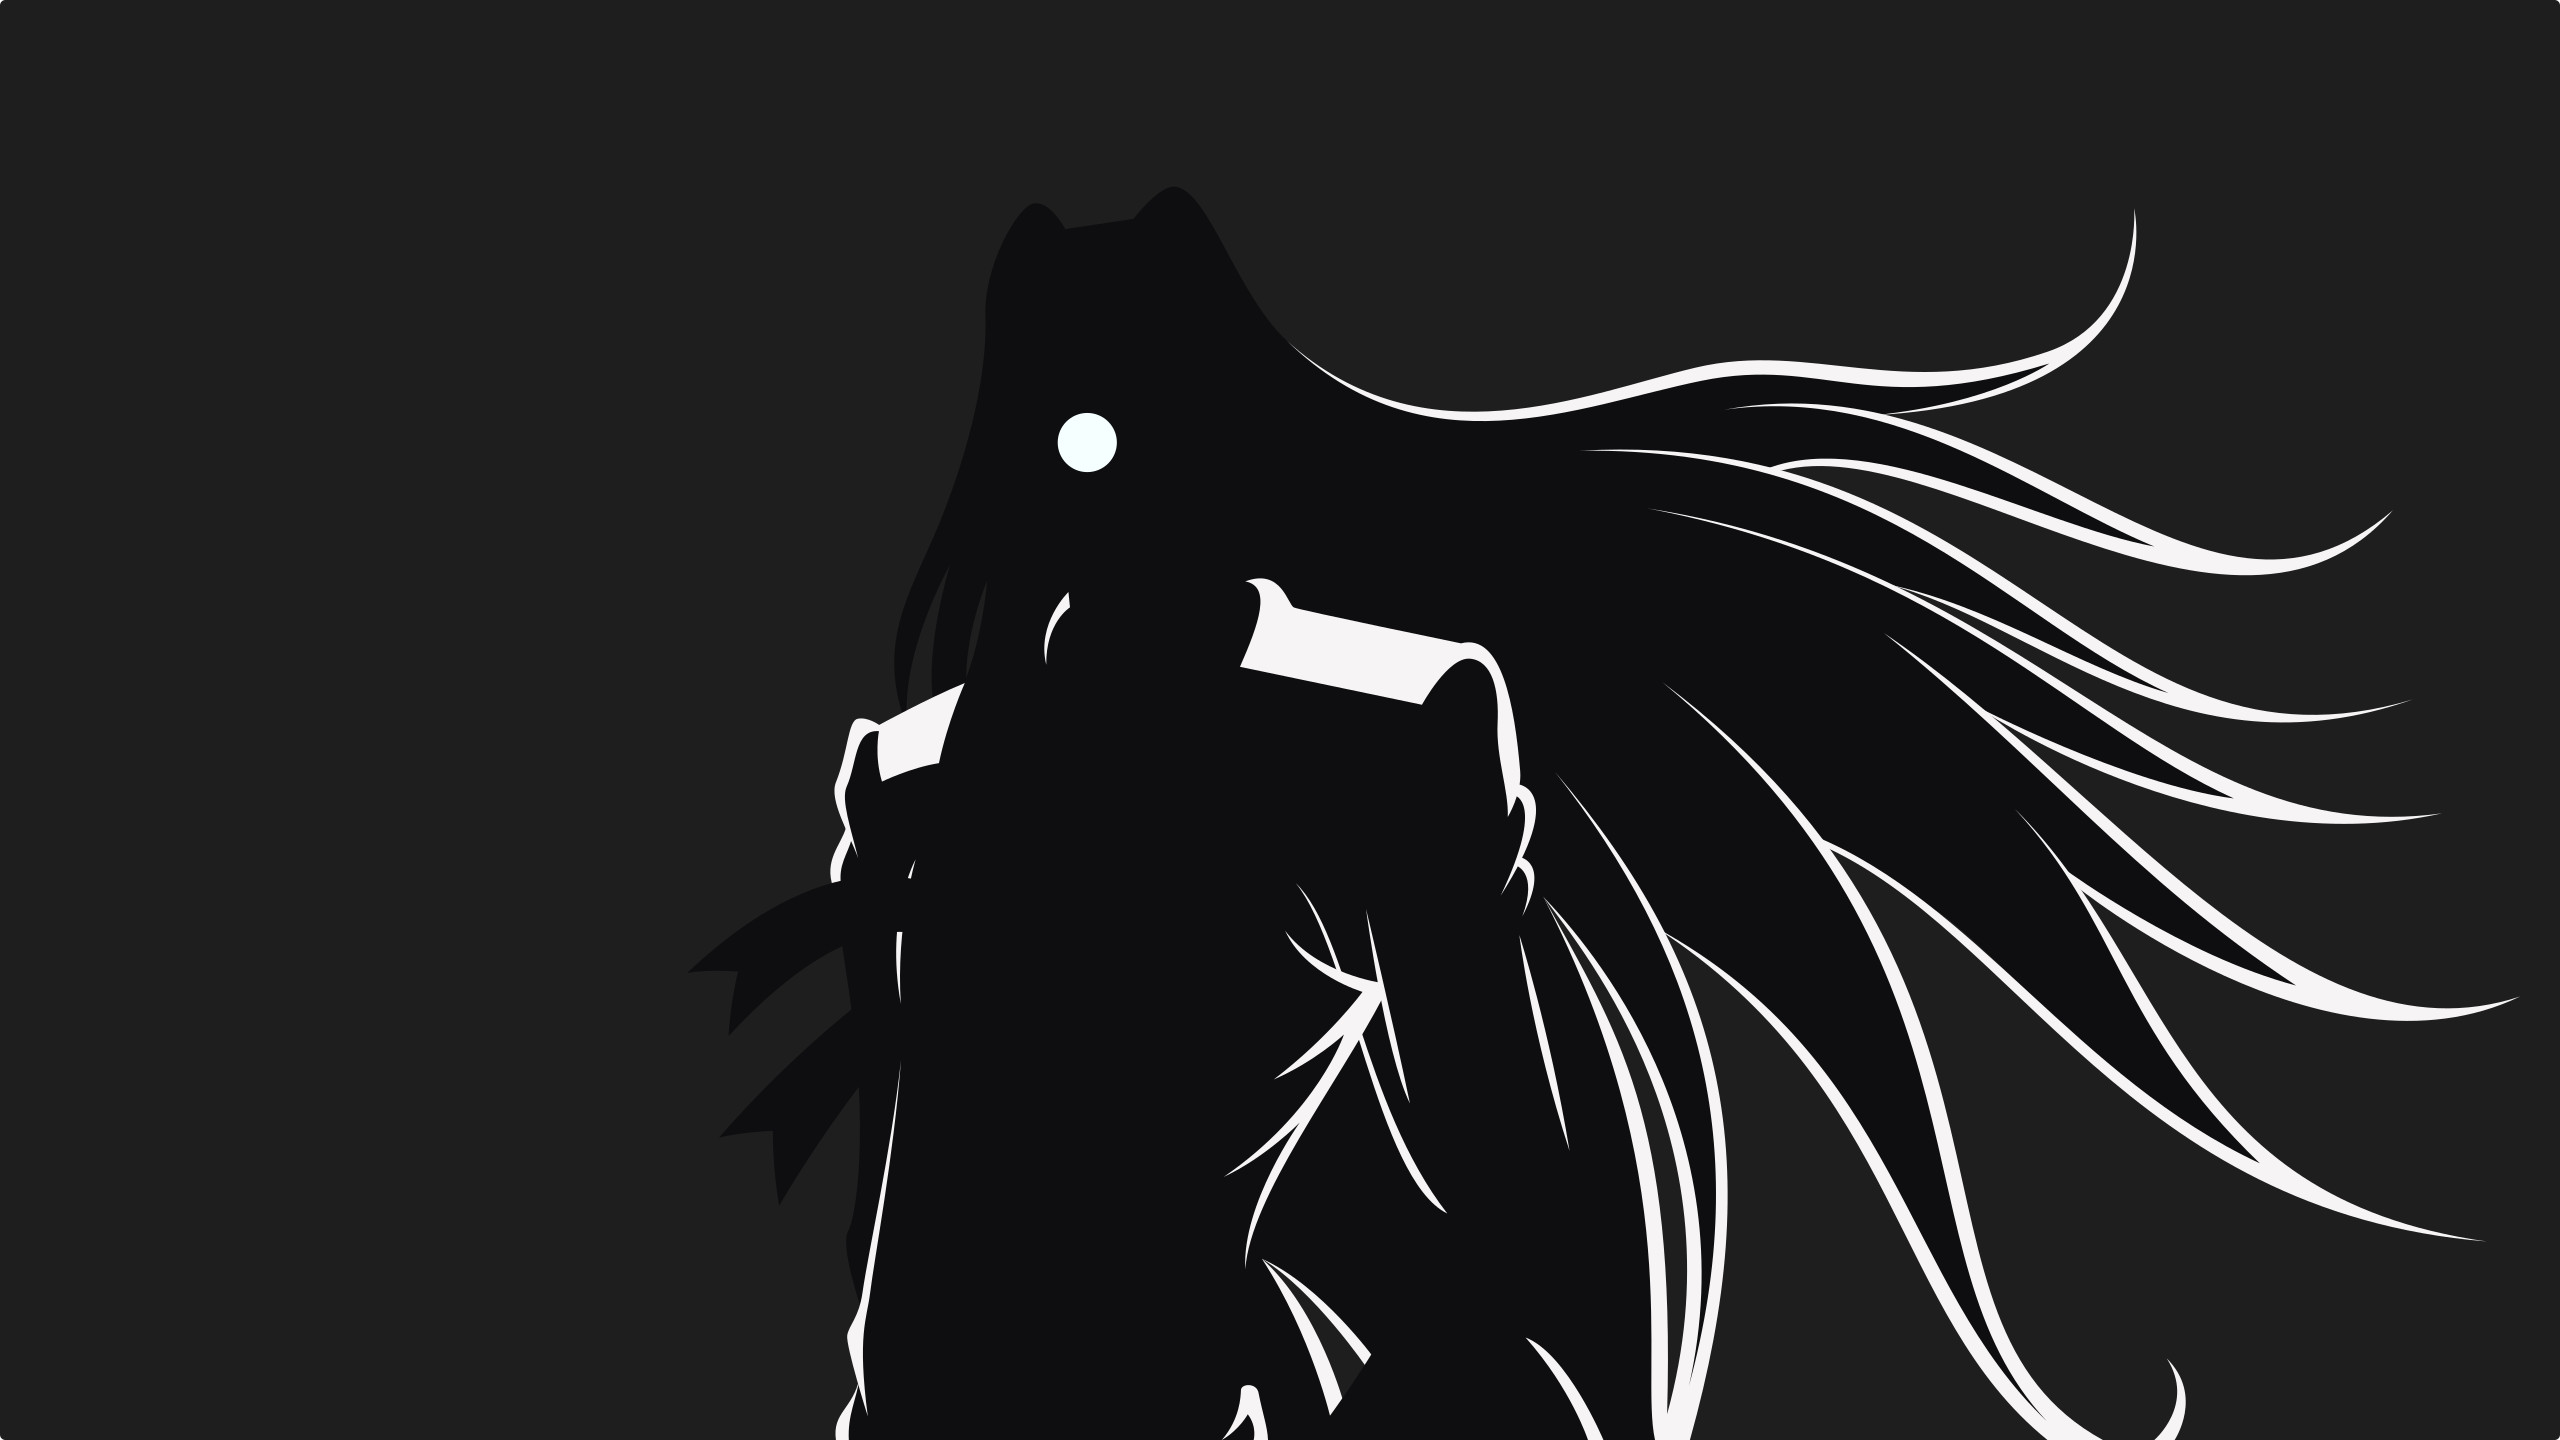 Res: 2560x1440, ... Hellsing Ultimate - Integra minimalism wallpaper by Carionto